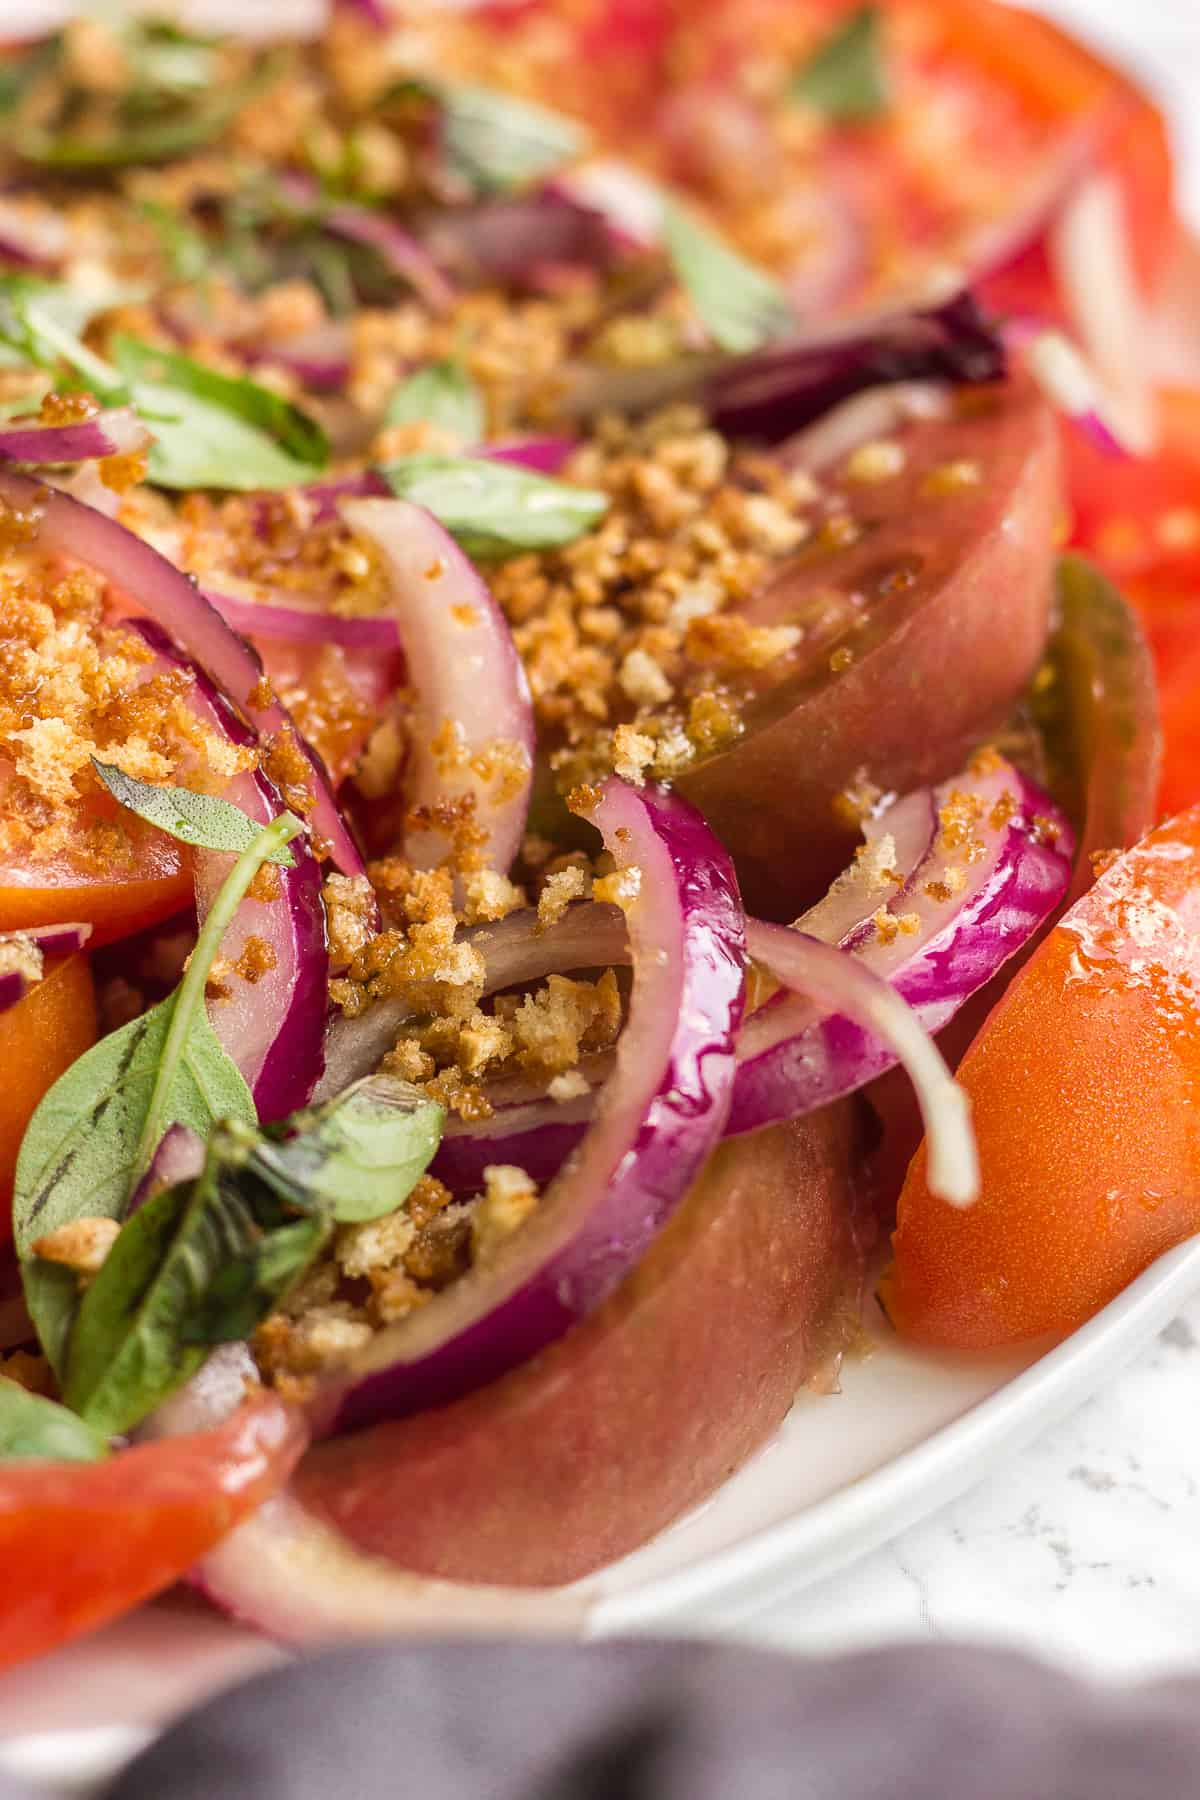 Tomato Salad With Red Onion